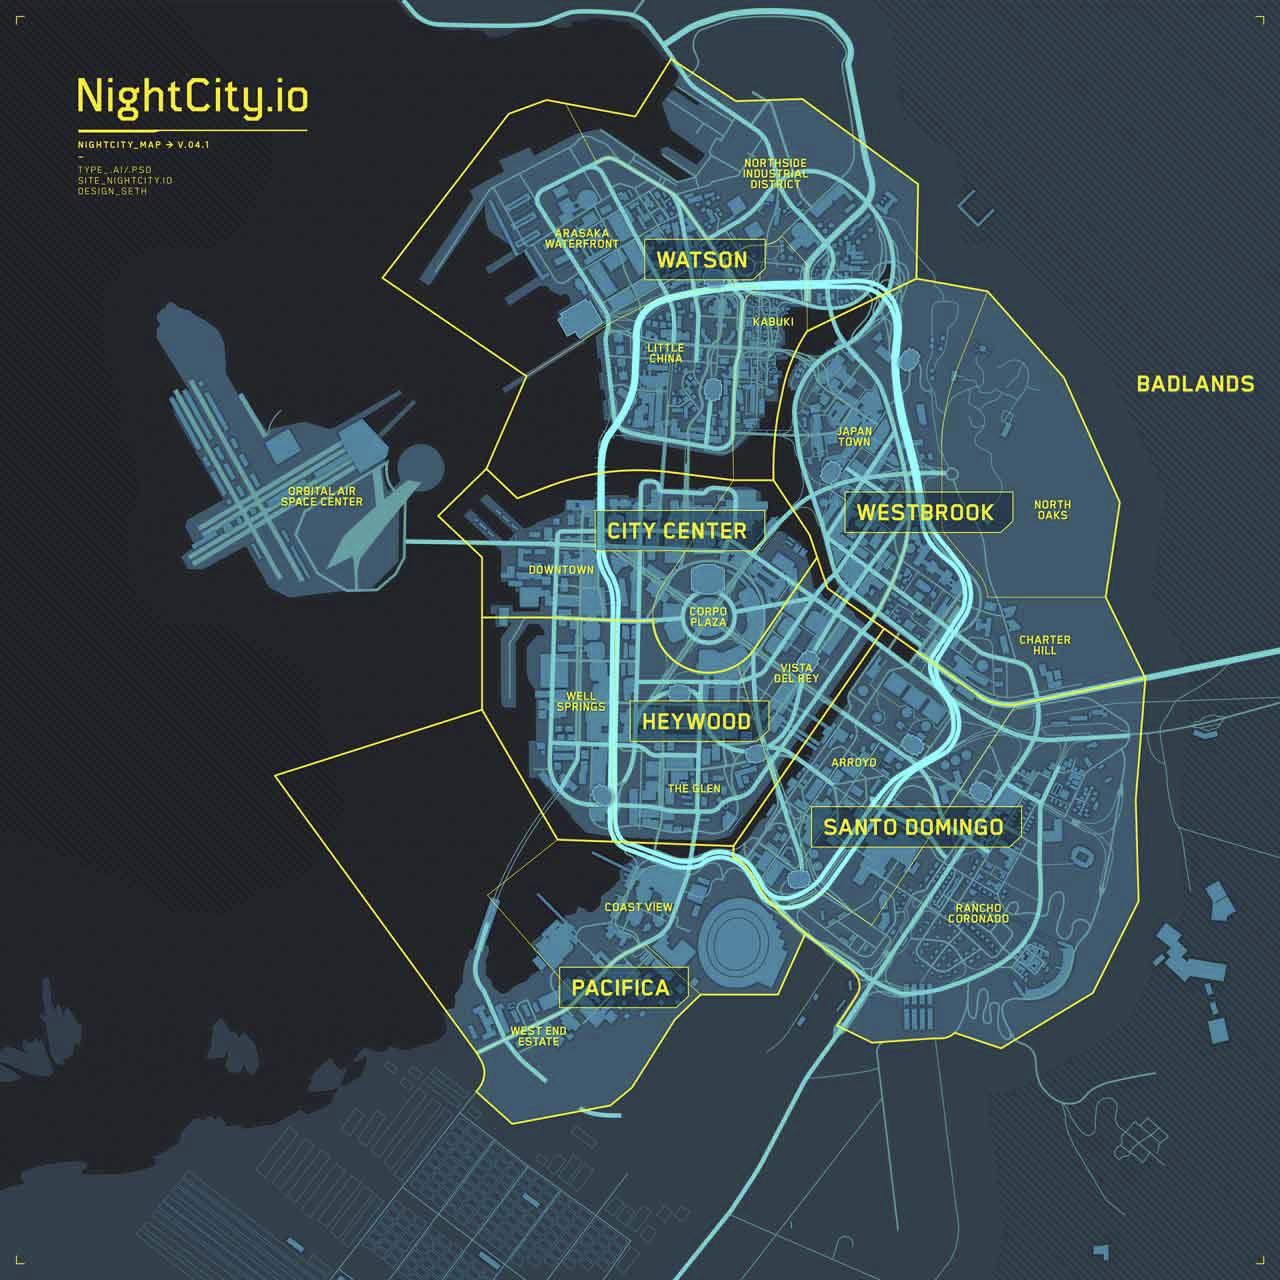 Cyberpunk 2077 : NightCity.io Wallpaper Map Available